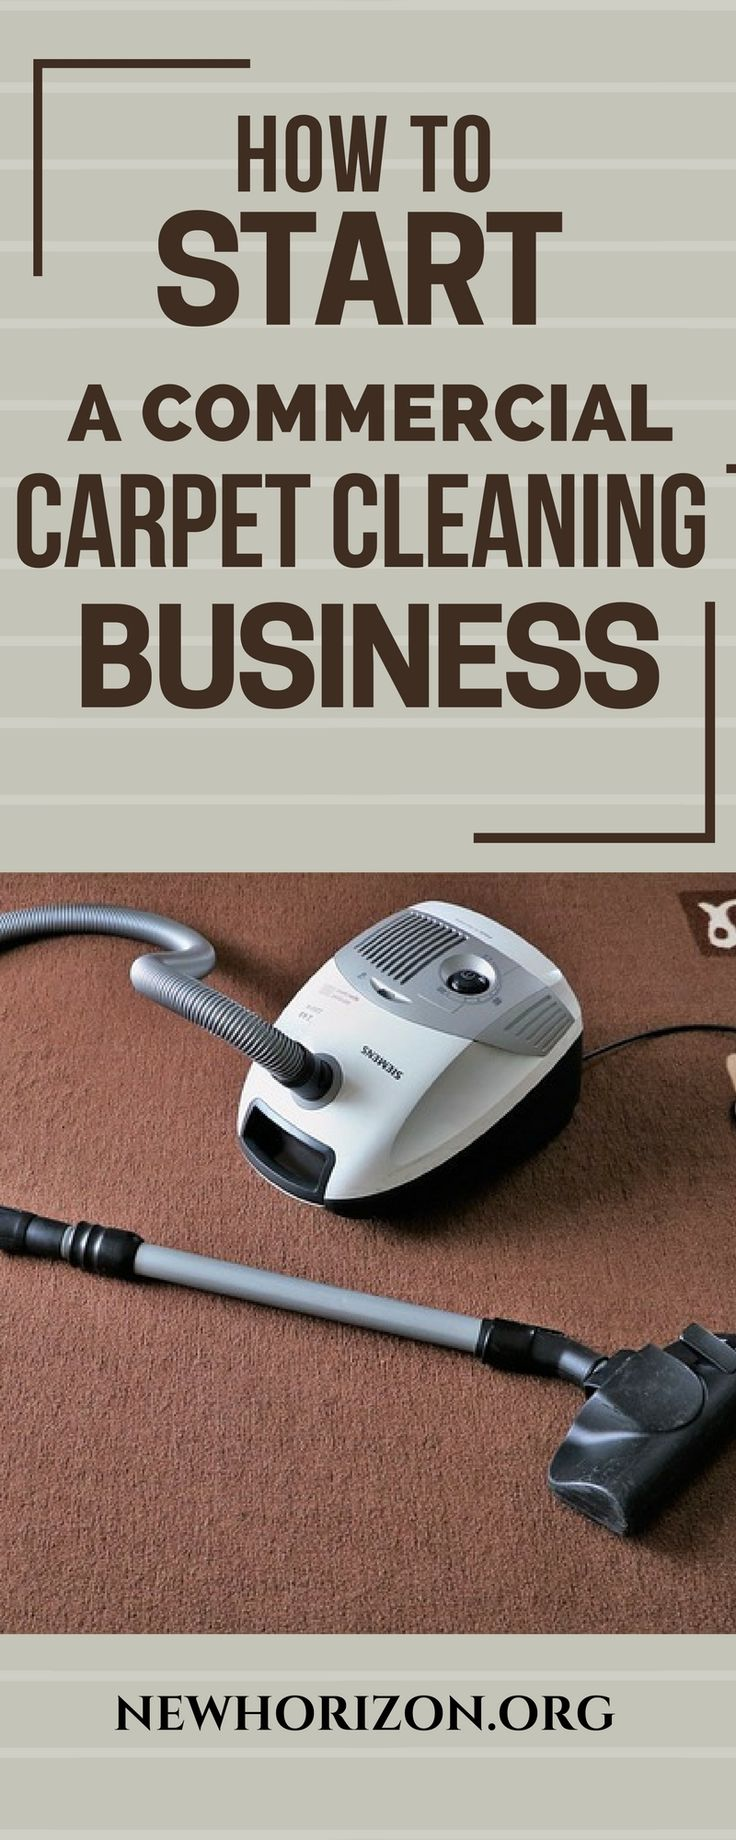 Commercial carpet cleaning business is easy to start because it does not require some of the things a traditional business does.